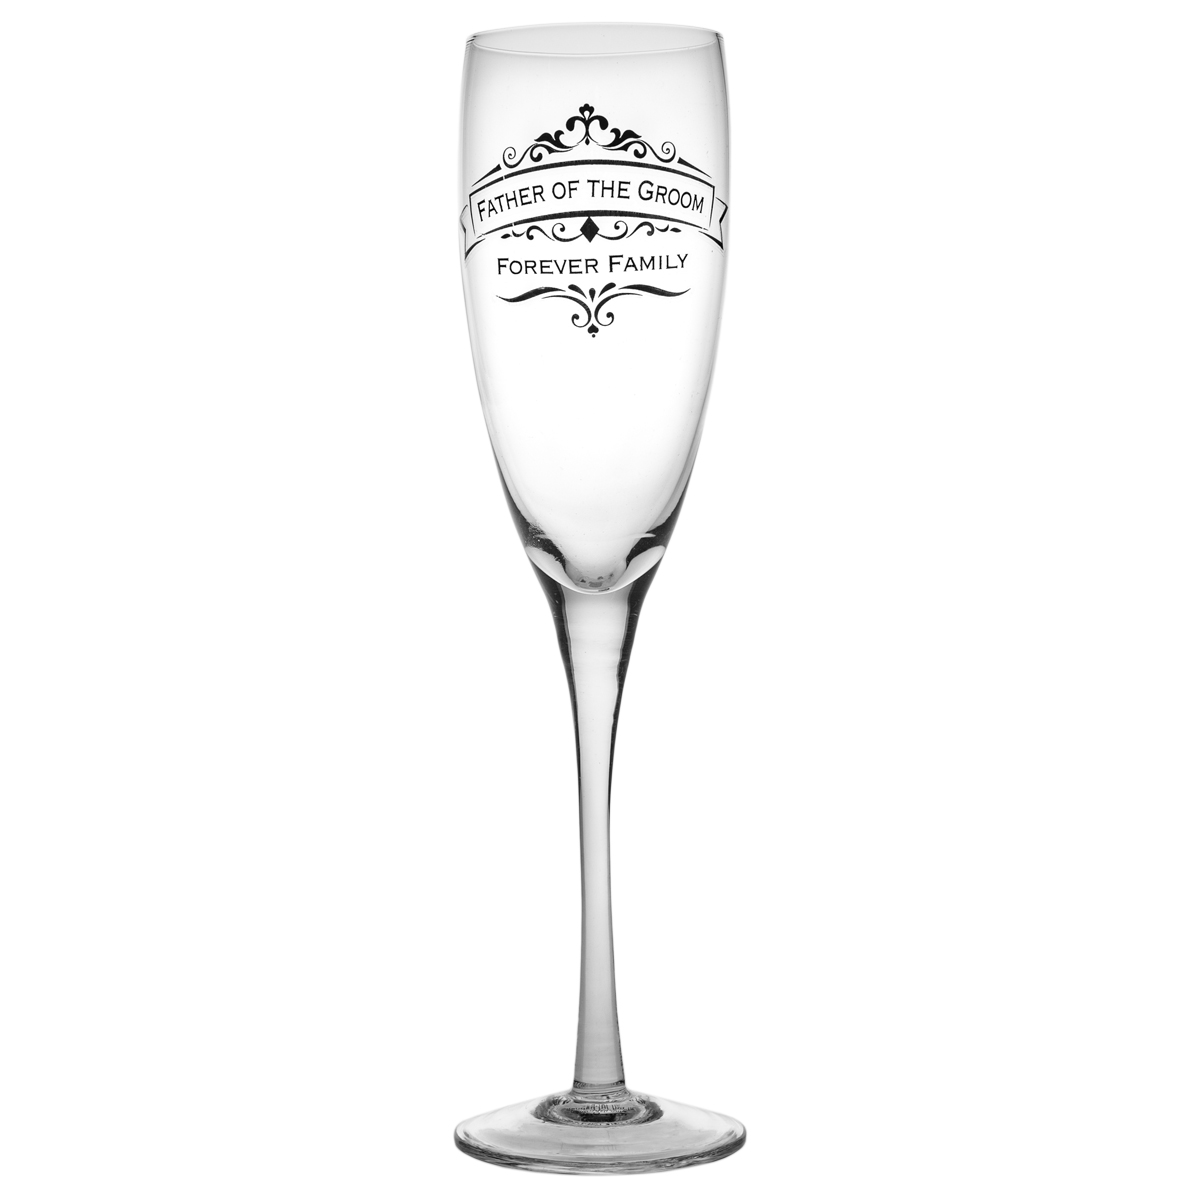 Father-Of-The-Groom-Wedding-11oz-Toasting-Glass-Enesco-Champagne-Flute-Gift-Box thumbnail 2